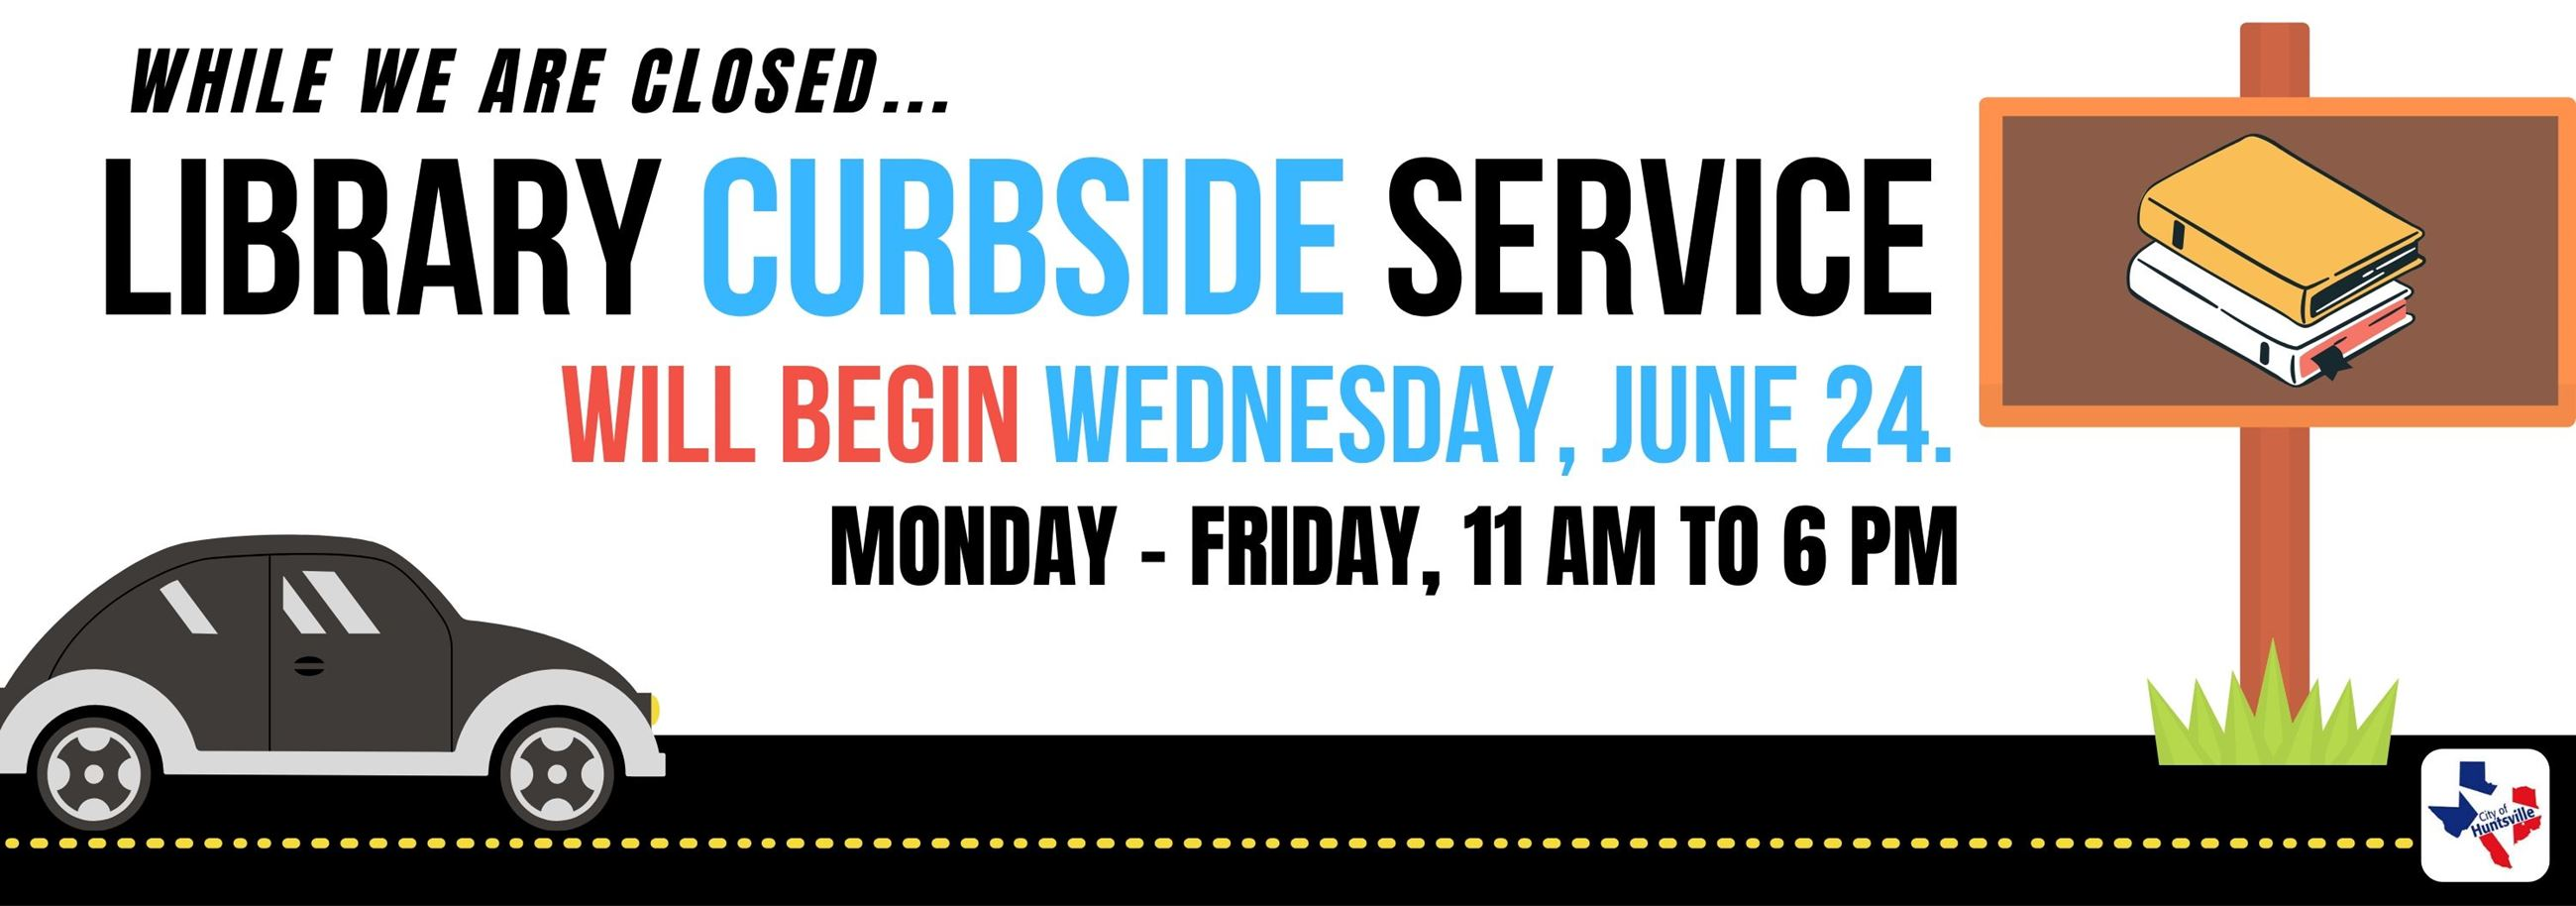 Curbside Pickup Service - July 24